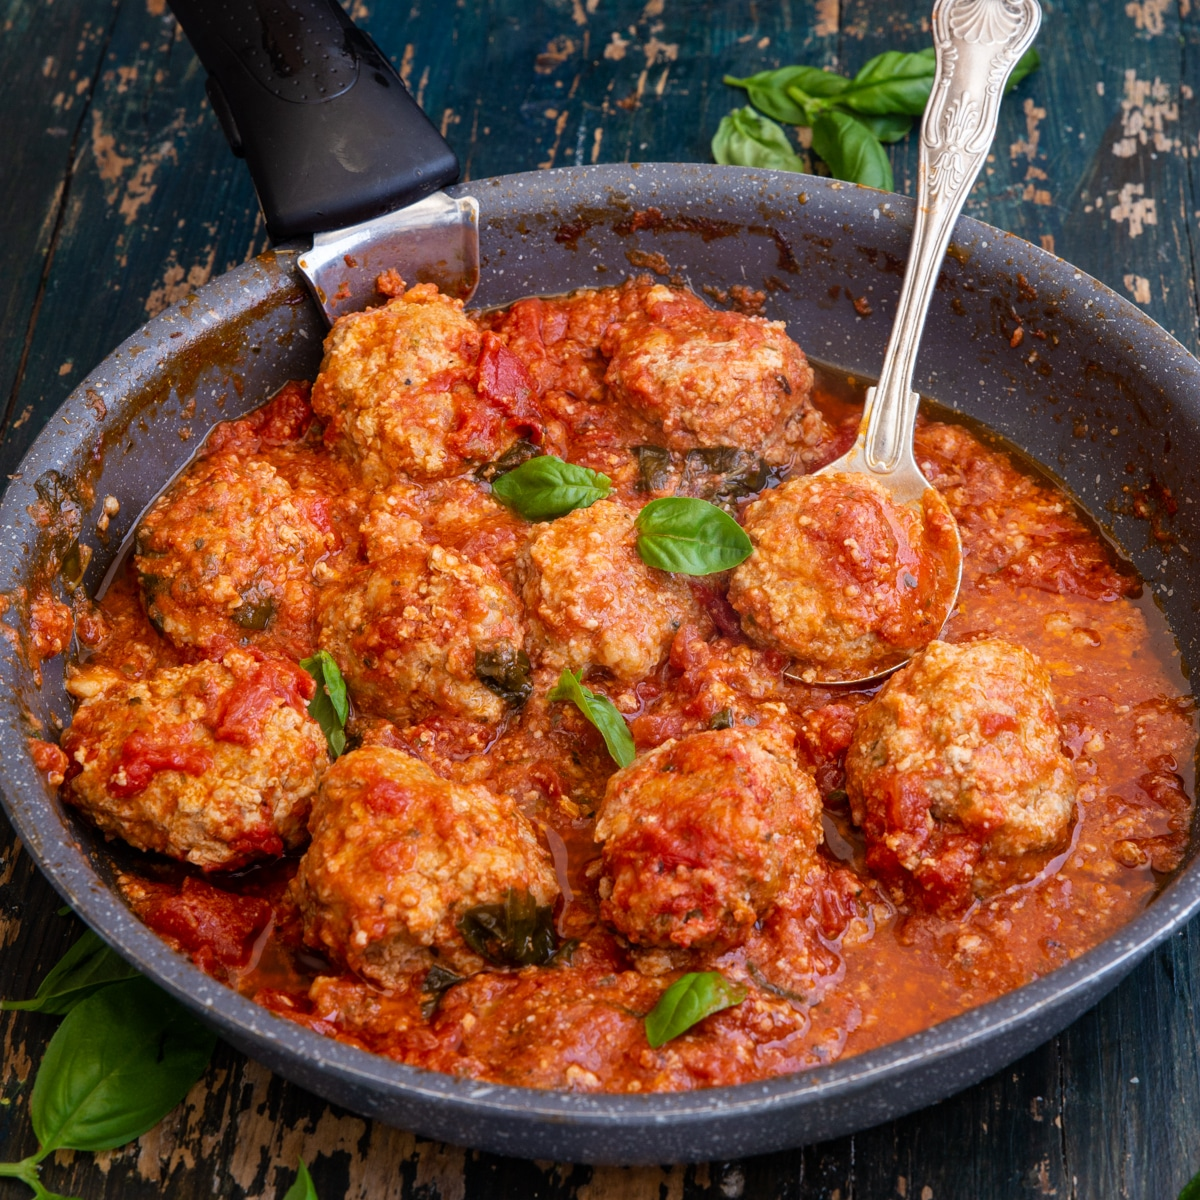 meatballs in a black pan